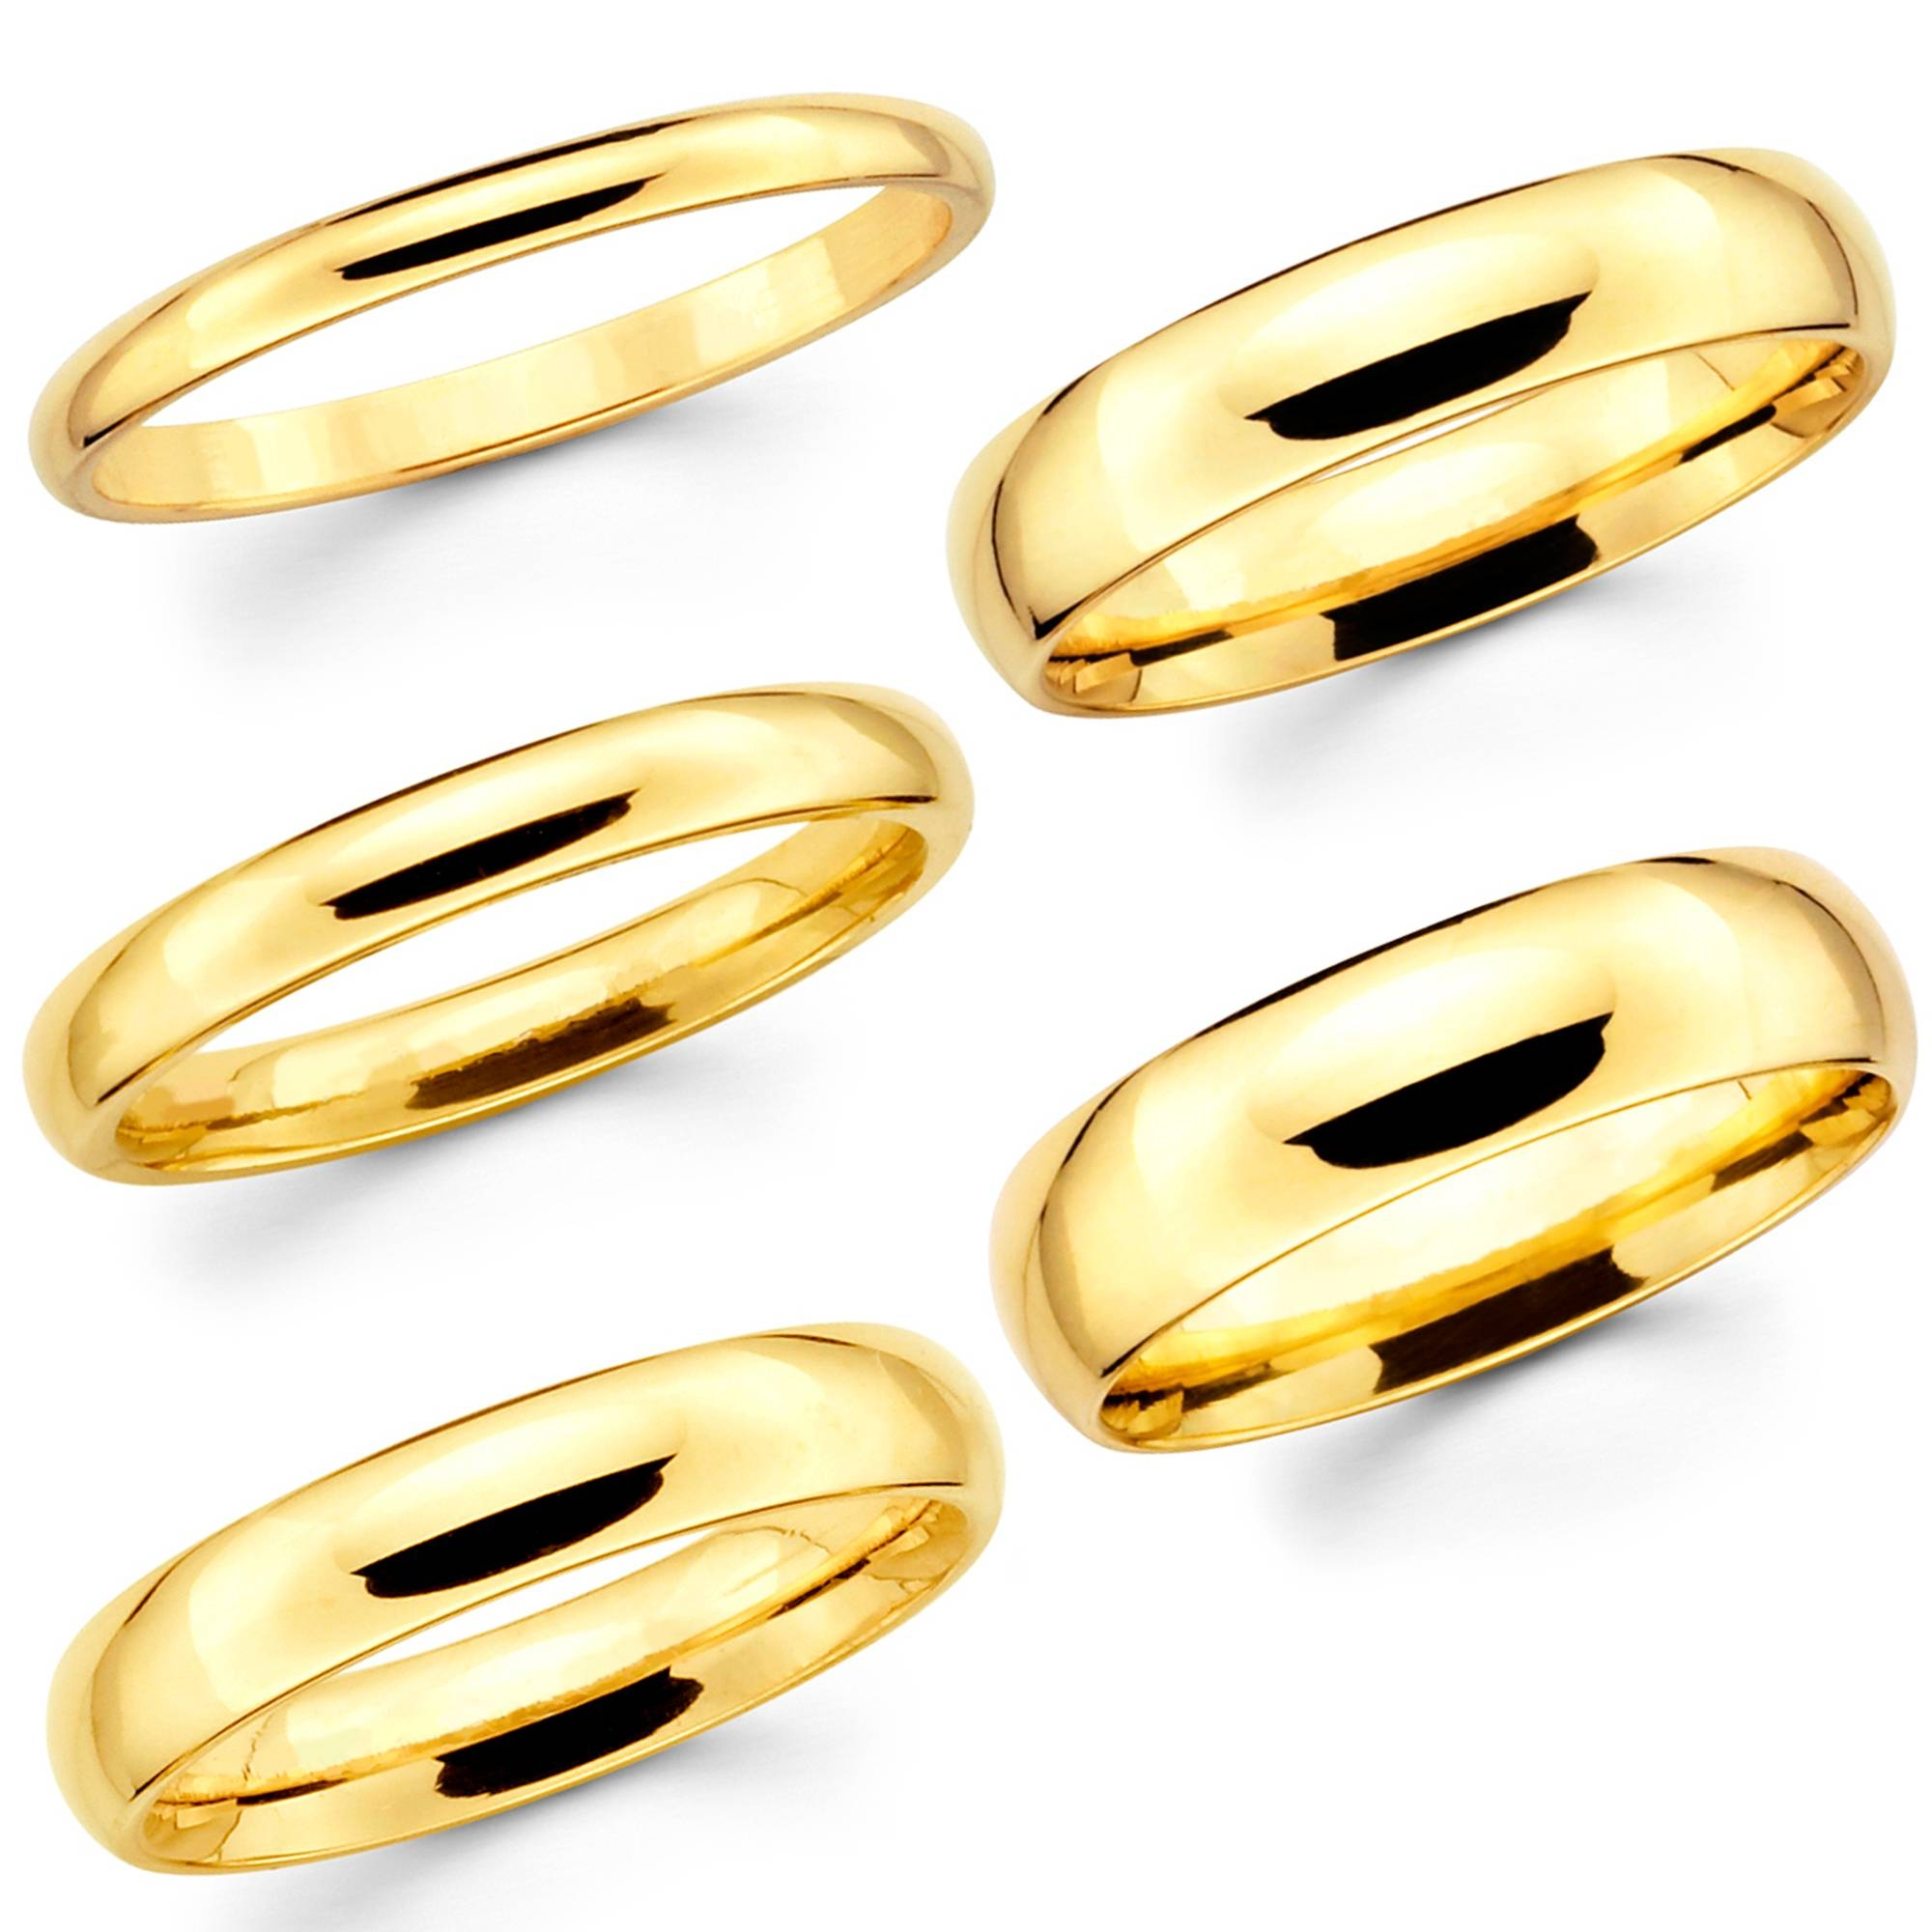 Solid 14K Yellow Gold 2Mm 3Mm 4Mm 5Mm 6Mm Comfort Fit Menwomen Intended For Current 4Mm Comfort Fit Wedding Bands (View 13 of 15)